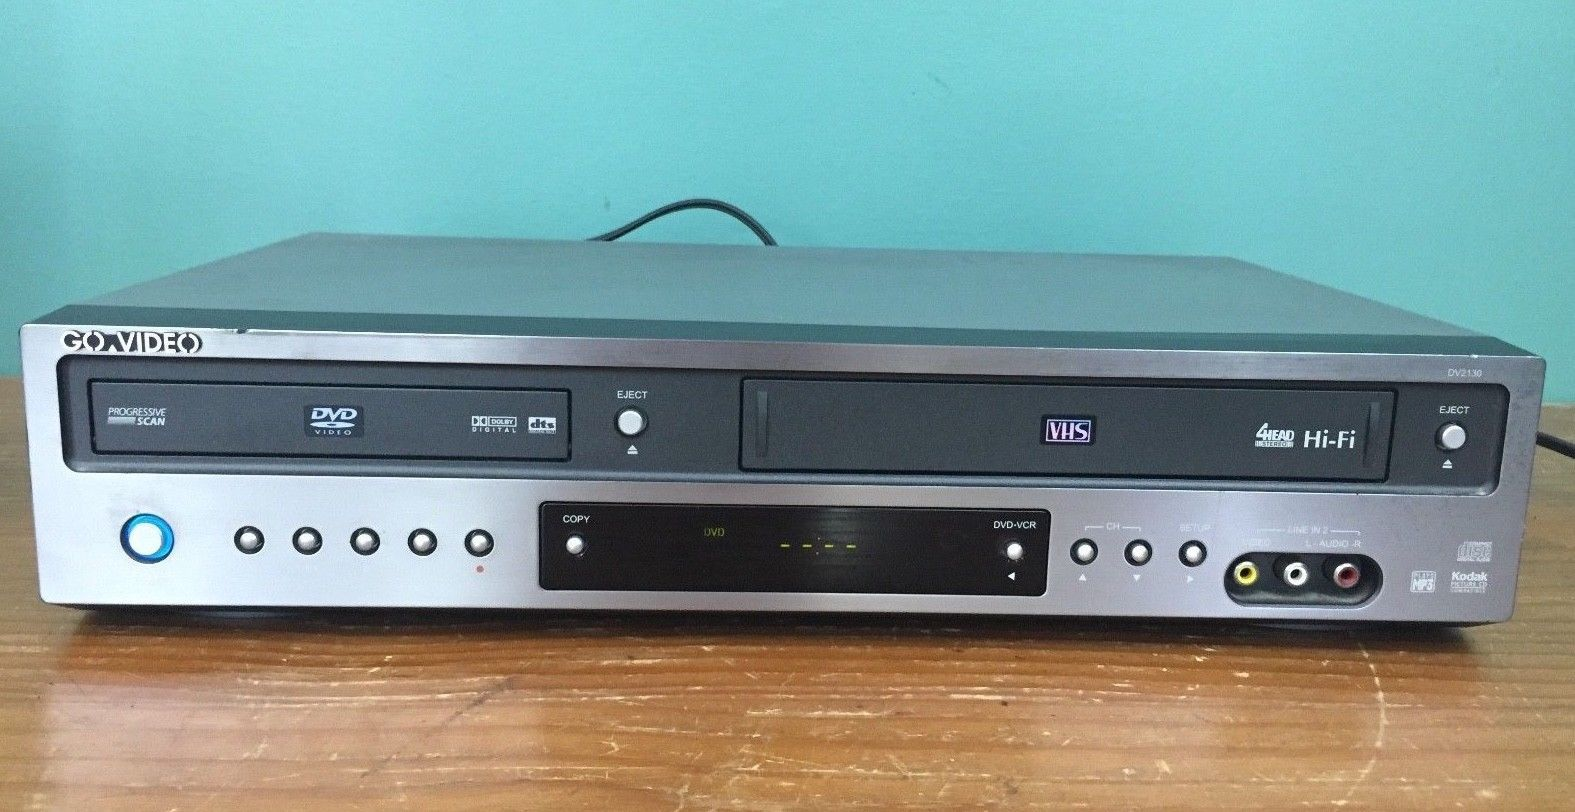 Go Video VCR/DVD Combo DV2130 4-Head Cassette Recorder VHS Player - Tested